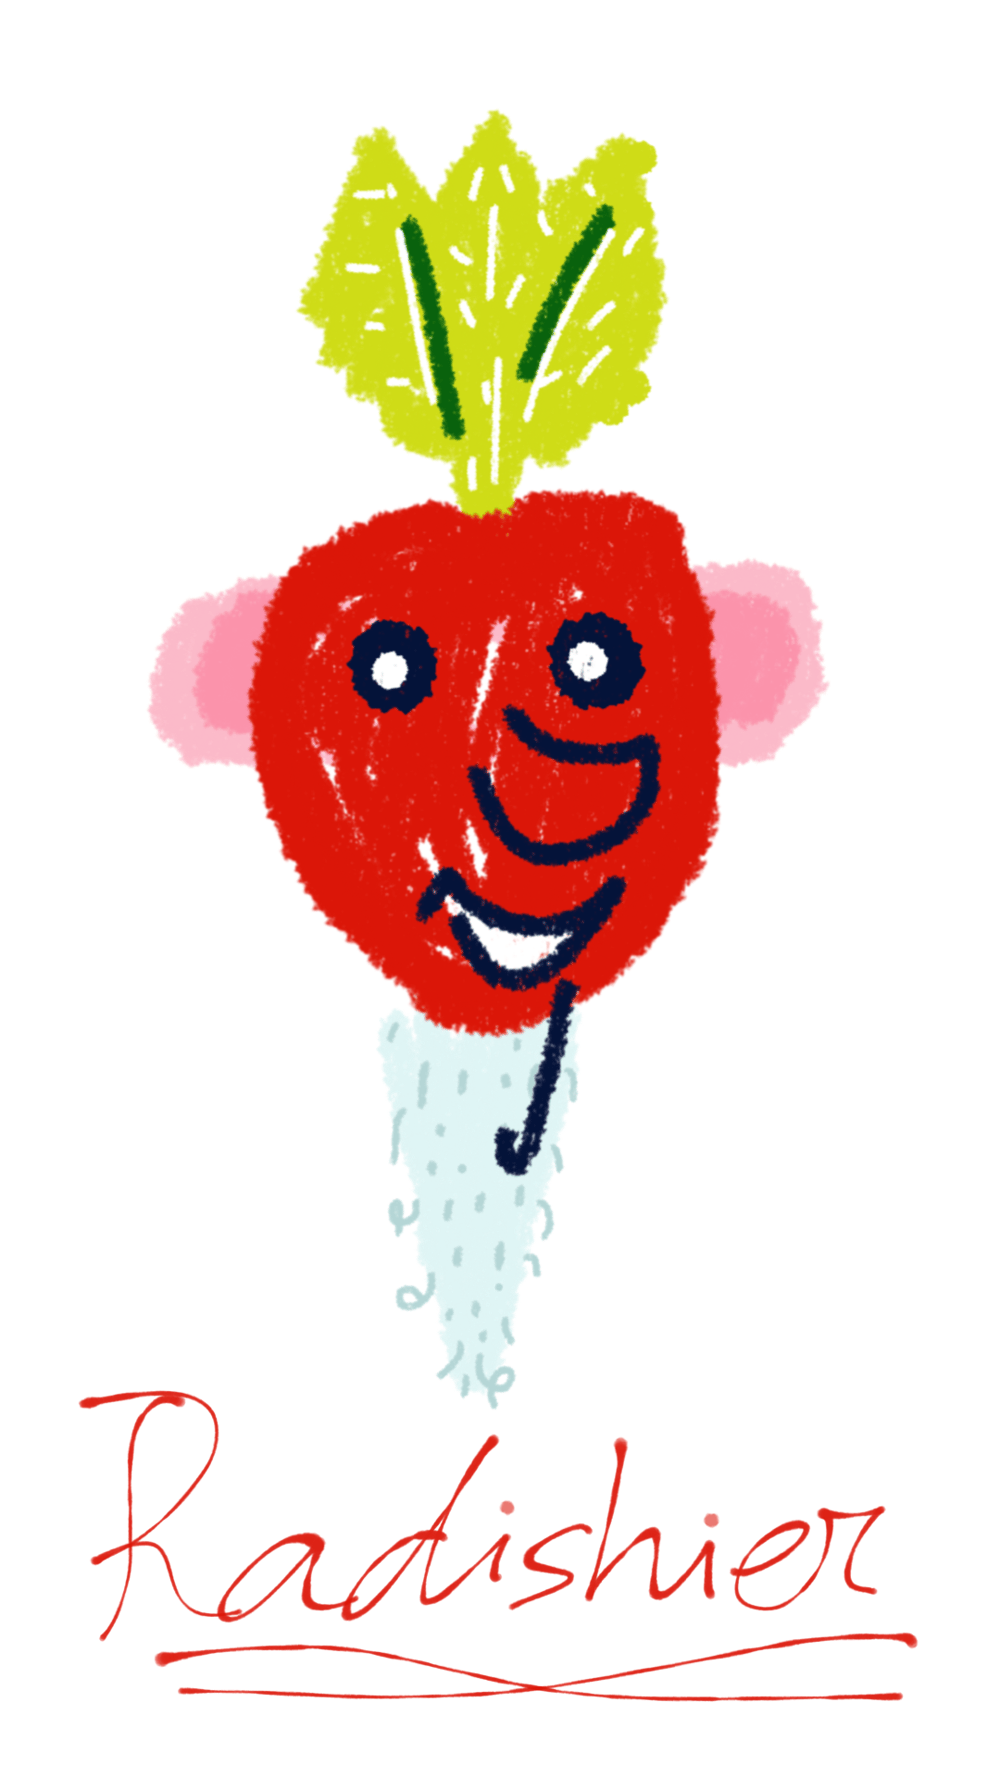 Inspiration from vegetable - image 2 - student project